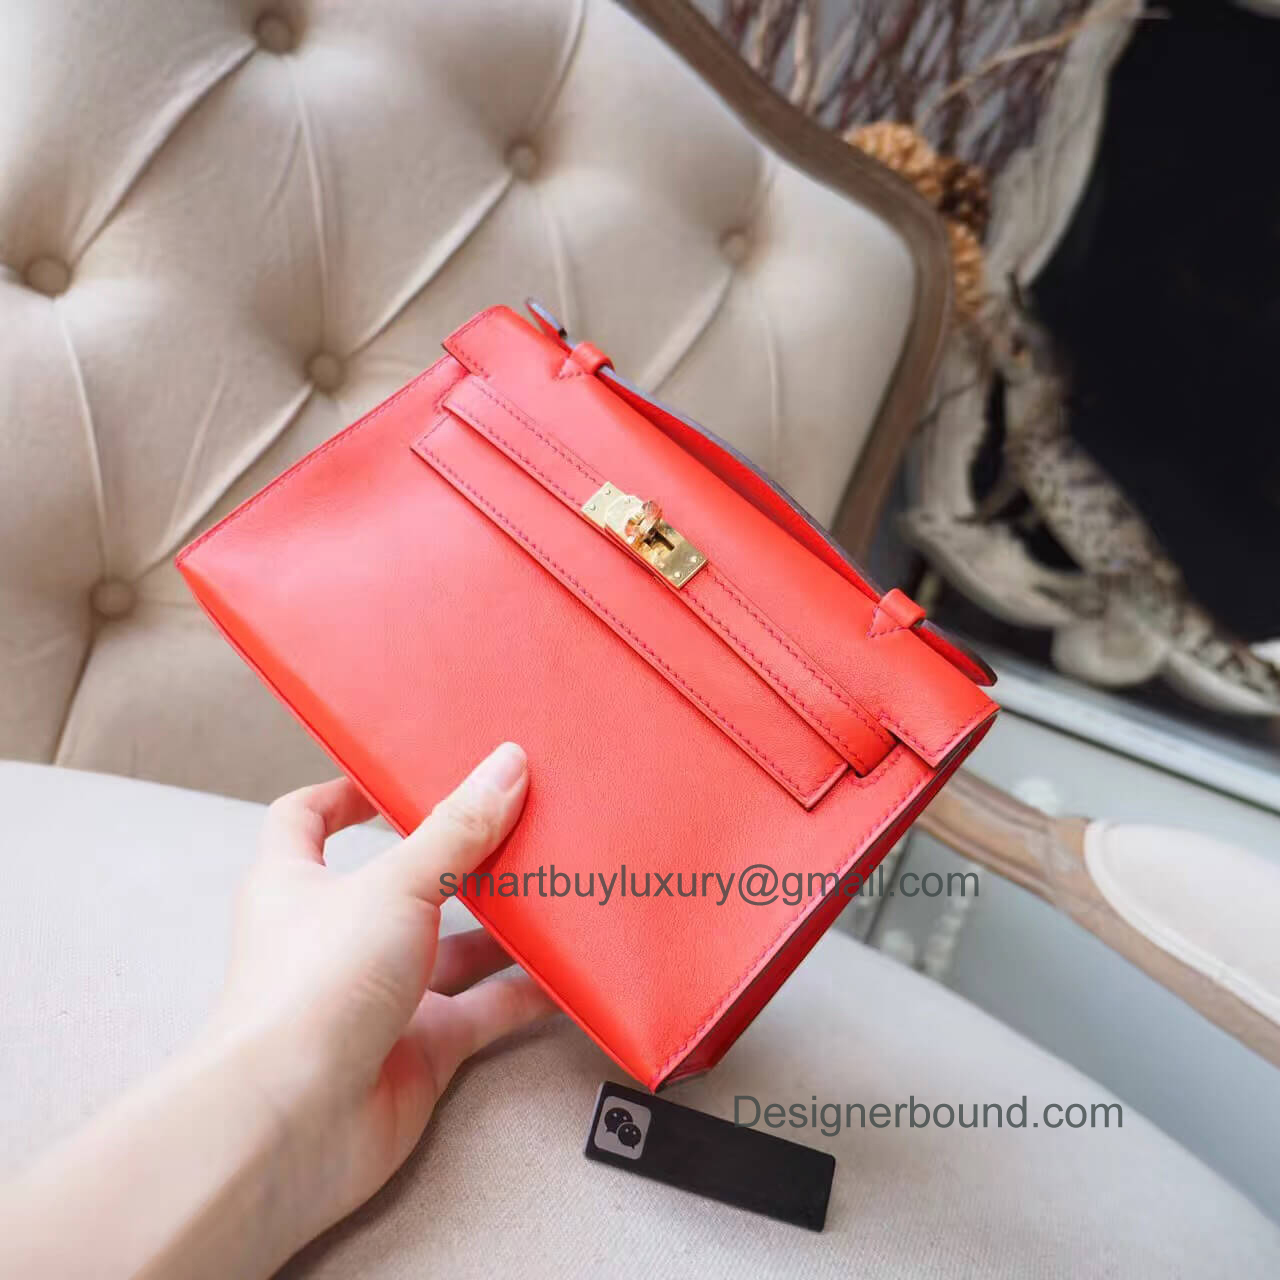 Hermes Mini Kelly 22 Pochette Bag in 8v Poppy Orange swift GHW